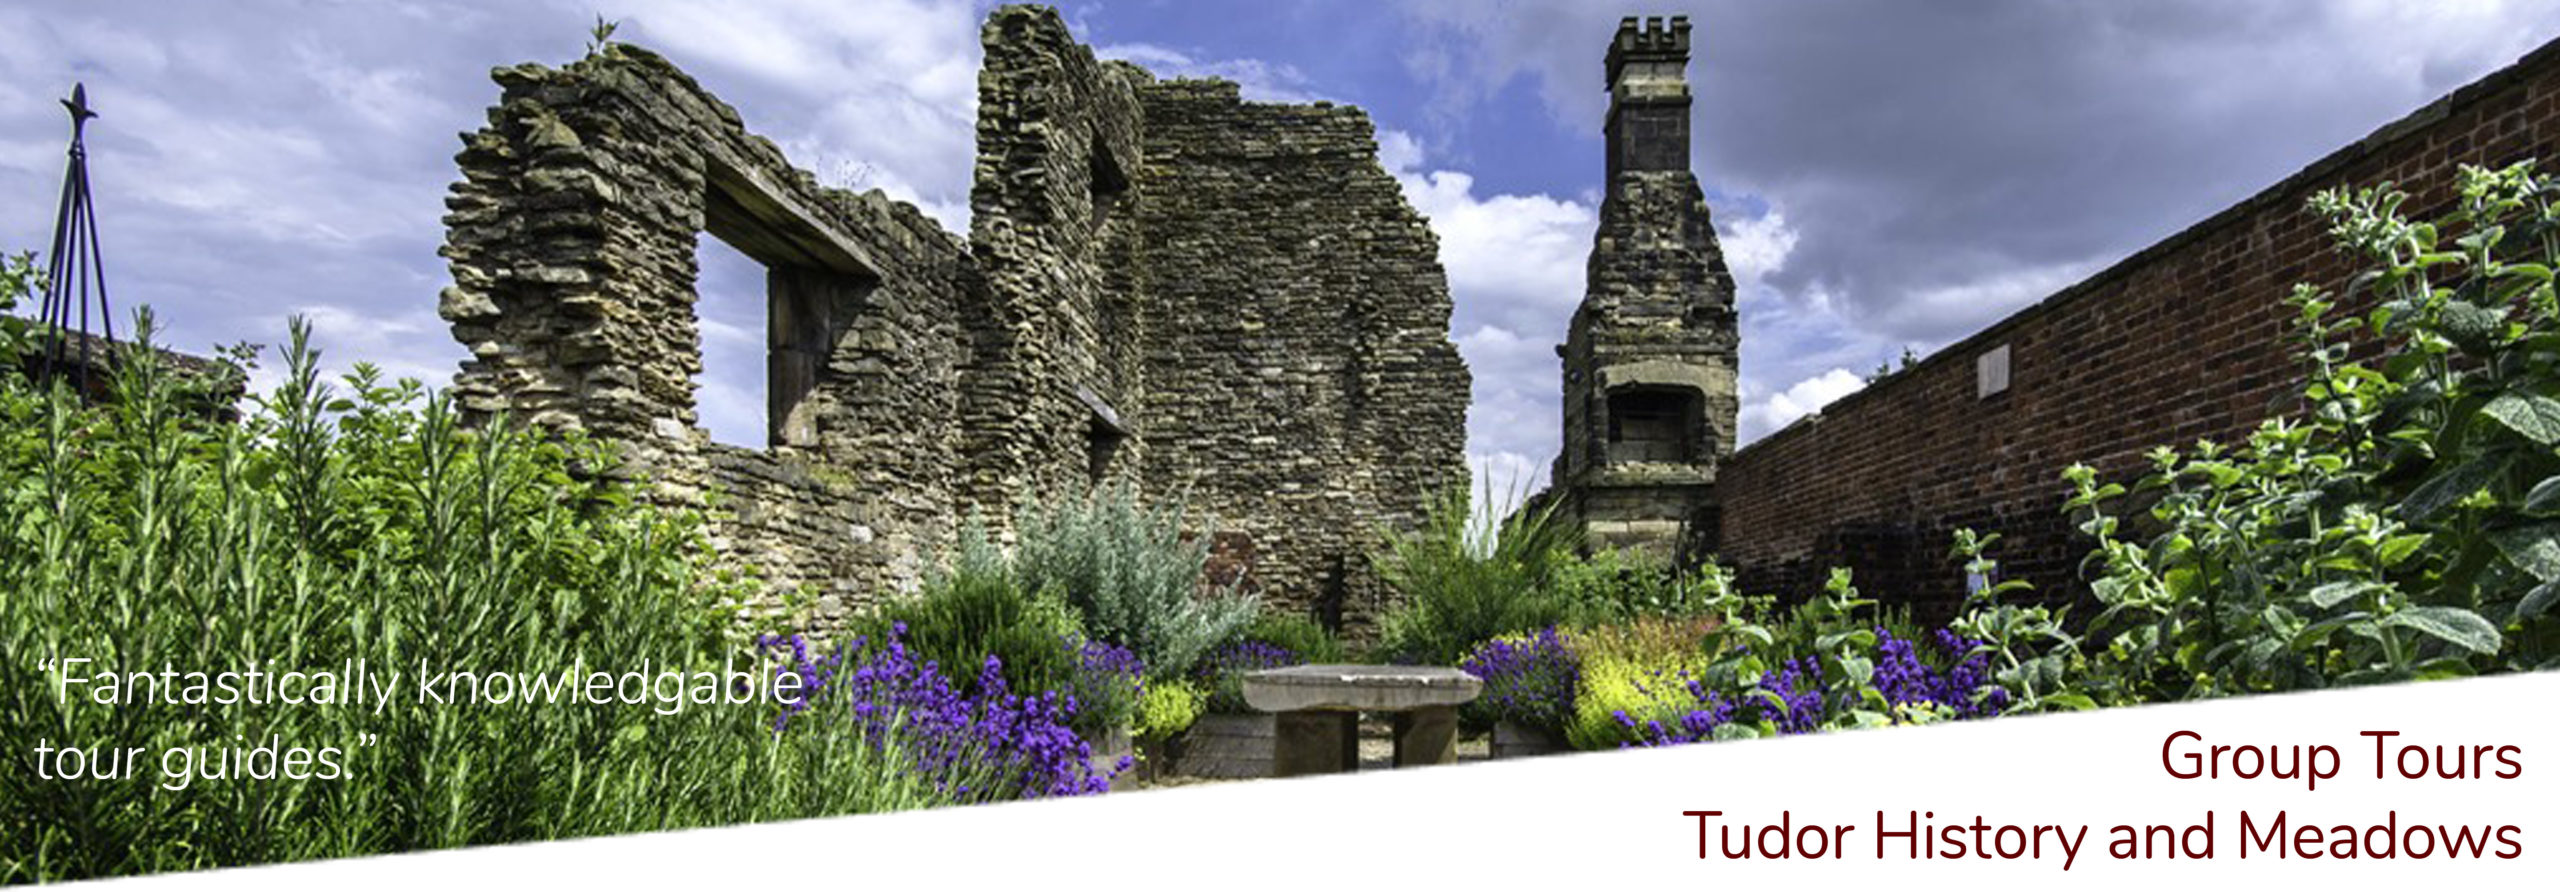 Tudor and wildflower meadows group tours